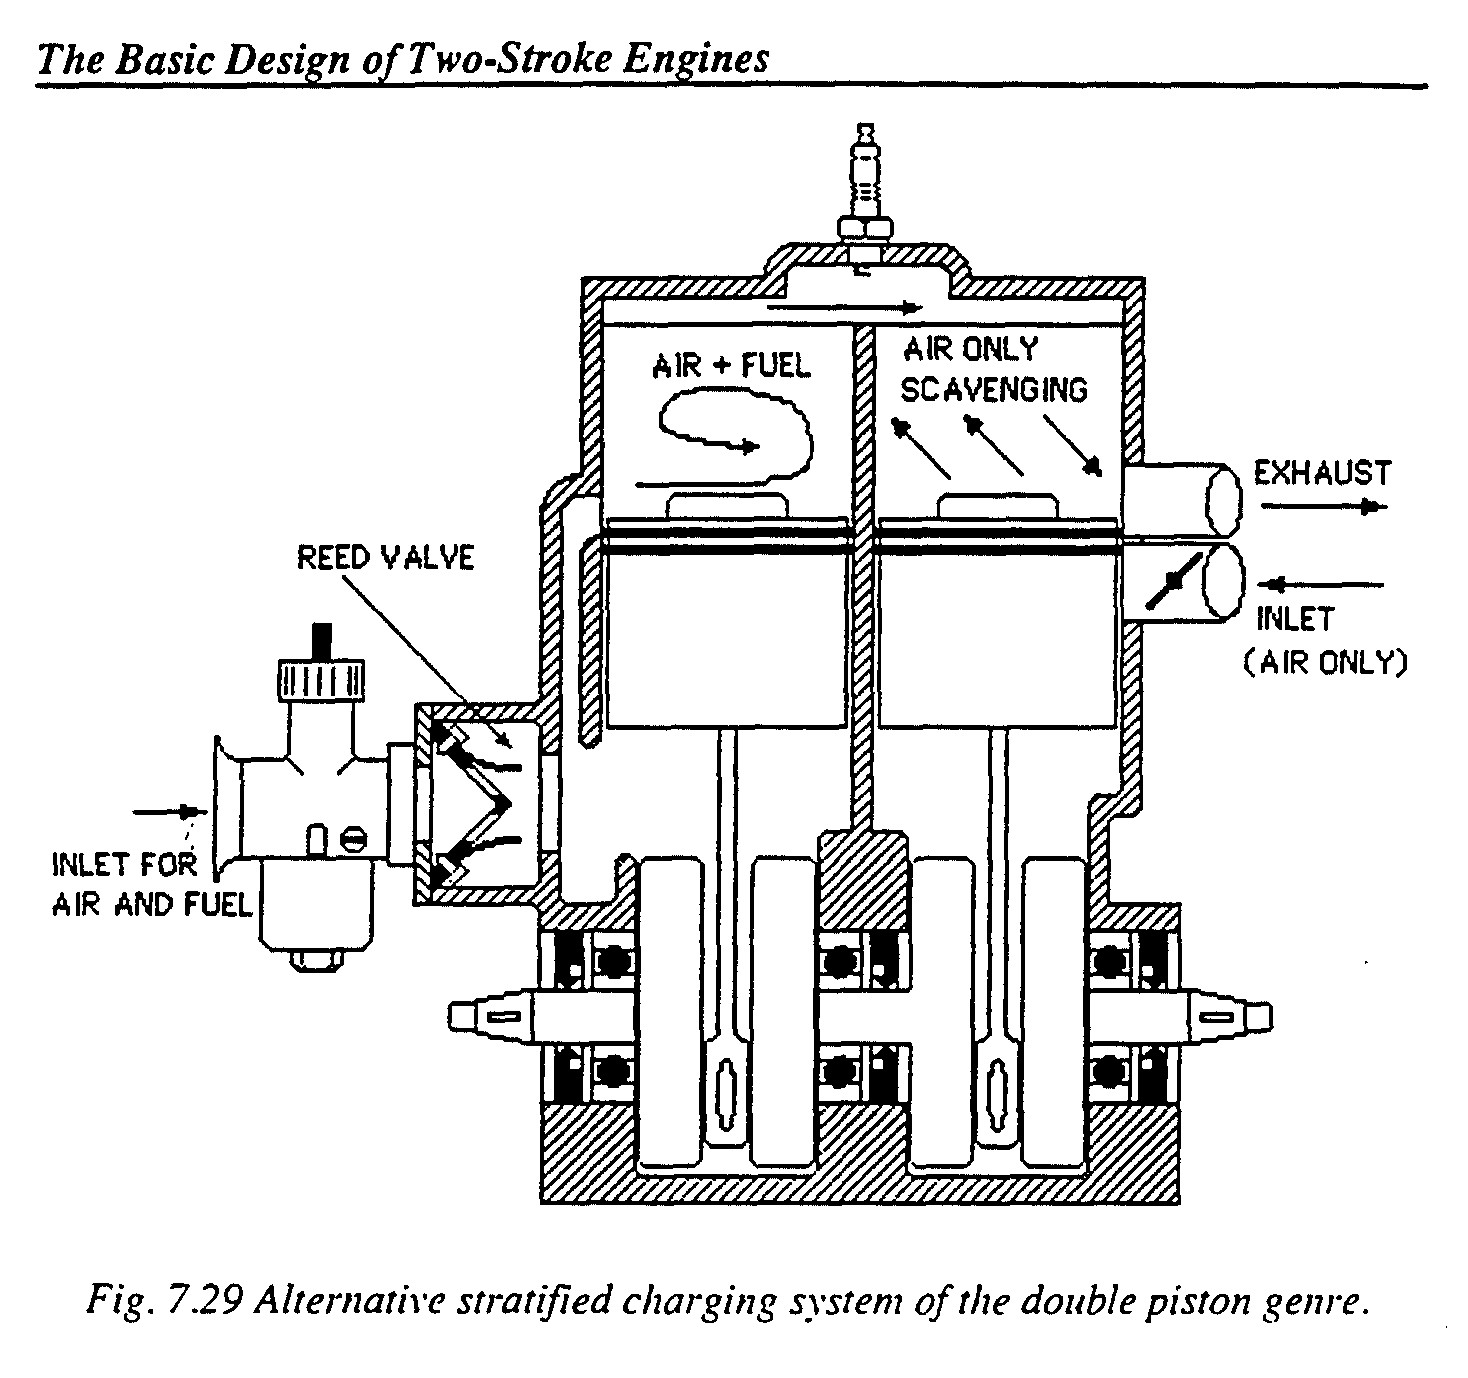 Two Stroke Diesel Engine Diagram Wo A1 Two Cycle Engine with Reduced Hydrocarbon Emissions Of Two Stroke Diesel Engine Diagram